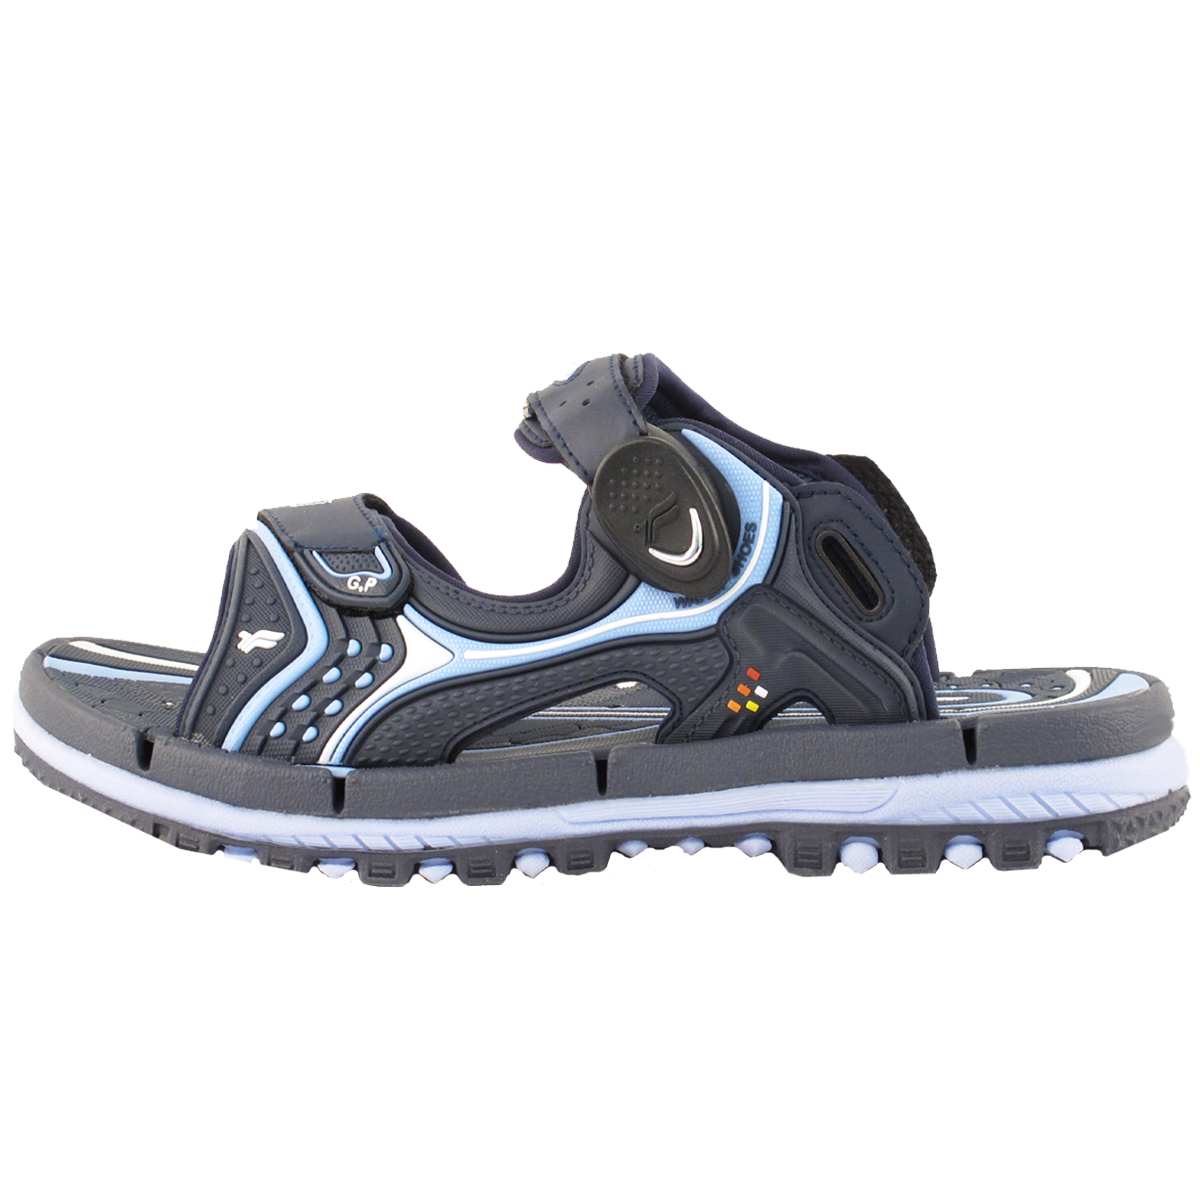 Forum on this topic: 13 Flip Flops With Arch Support, 13-flip-flops-with-arch-support/